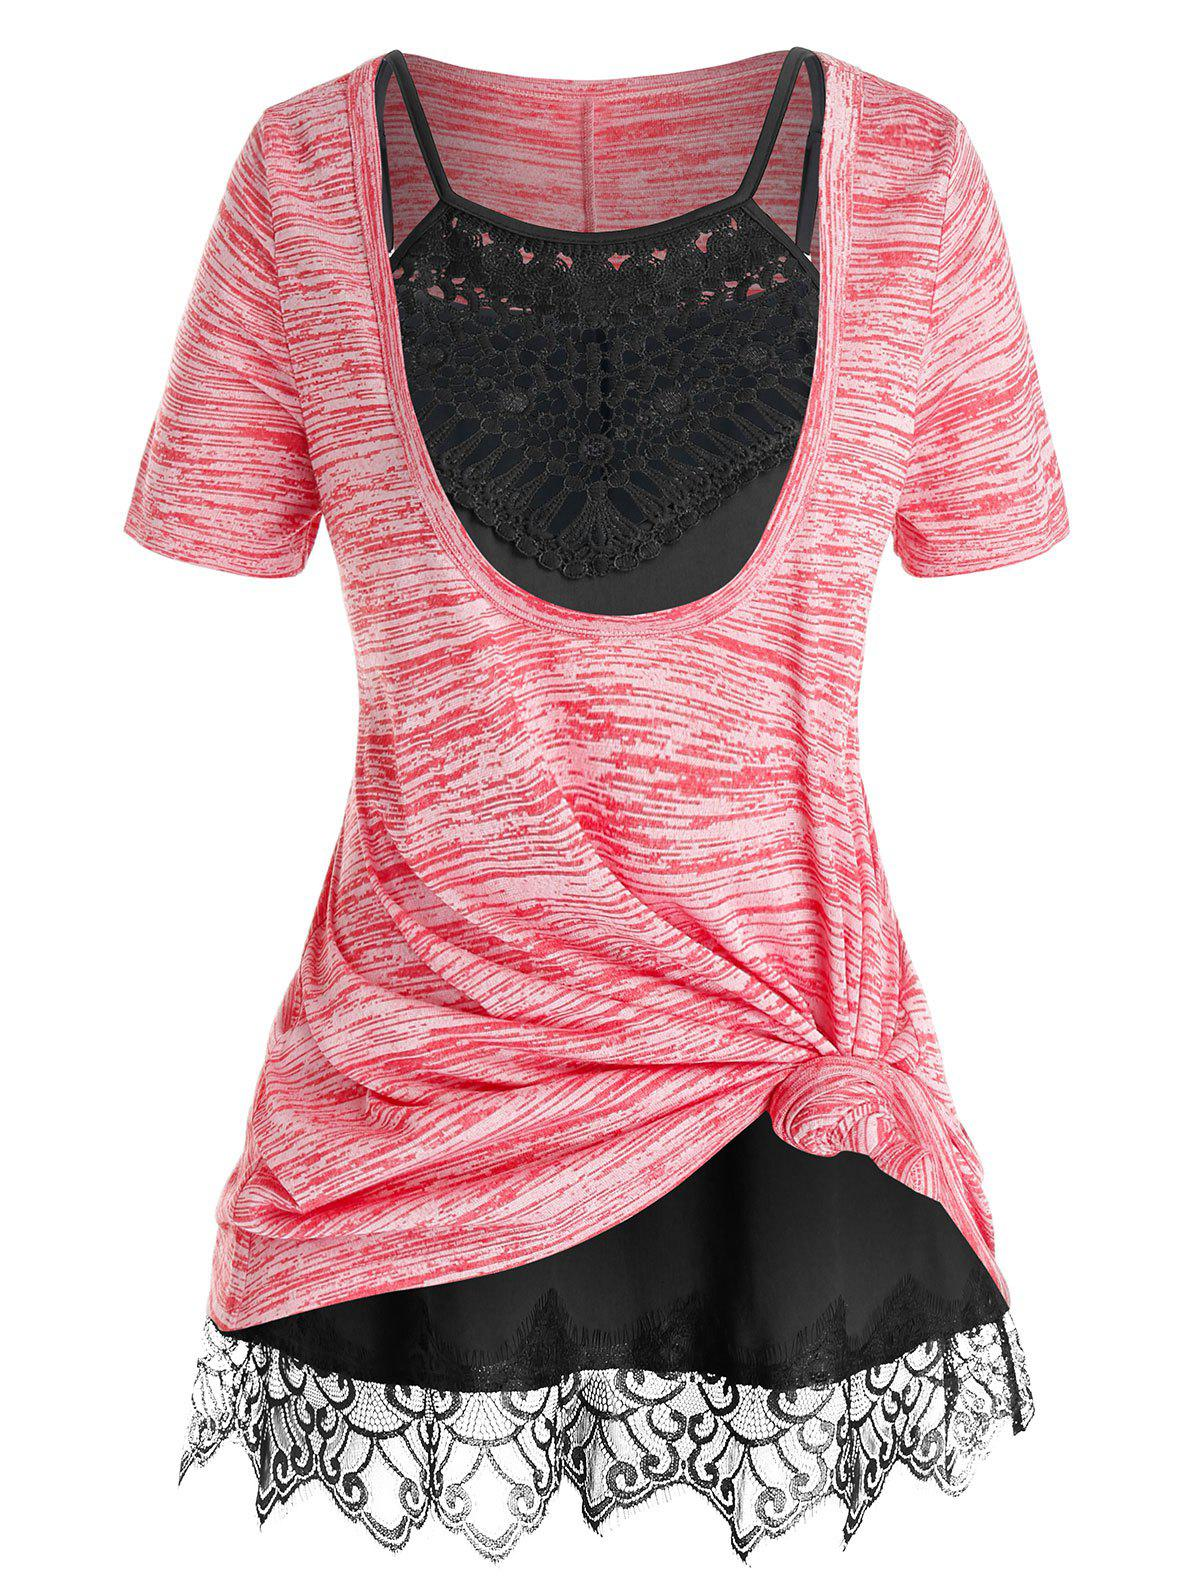 Plus Size Space Dye Front Knot T Shirt and Cami Top Set - WATERMELON PINK 5X